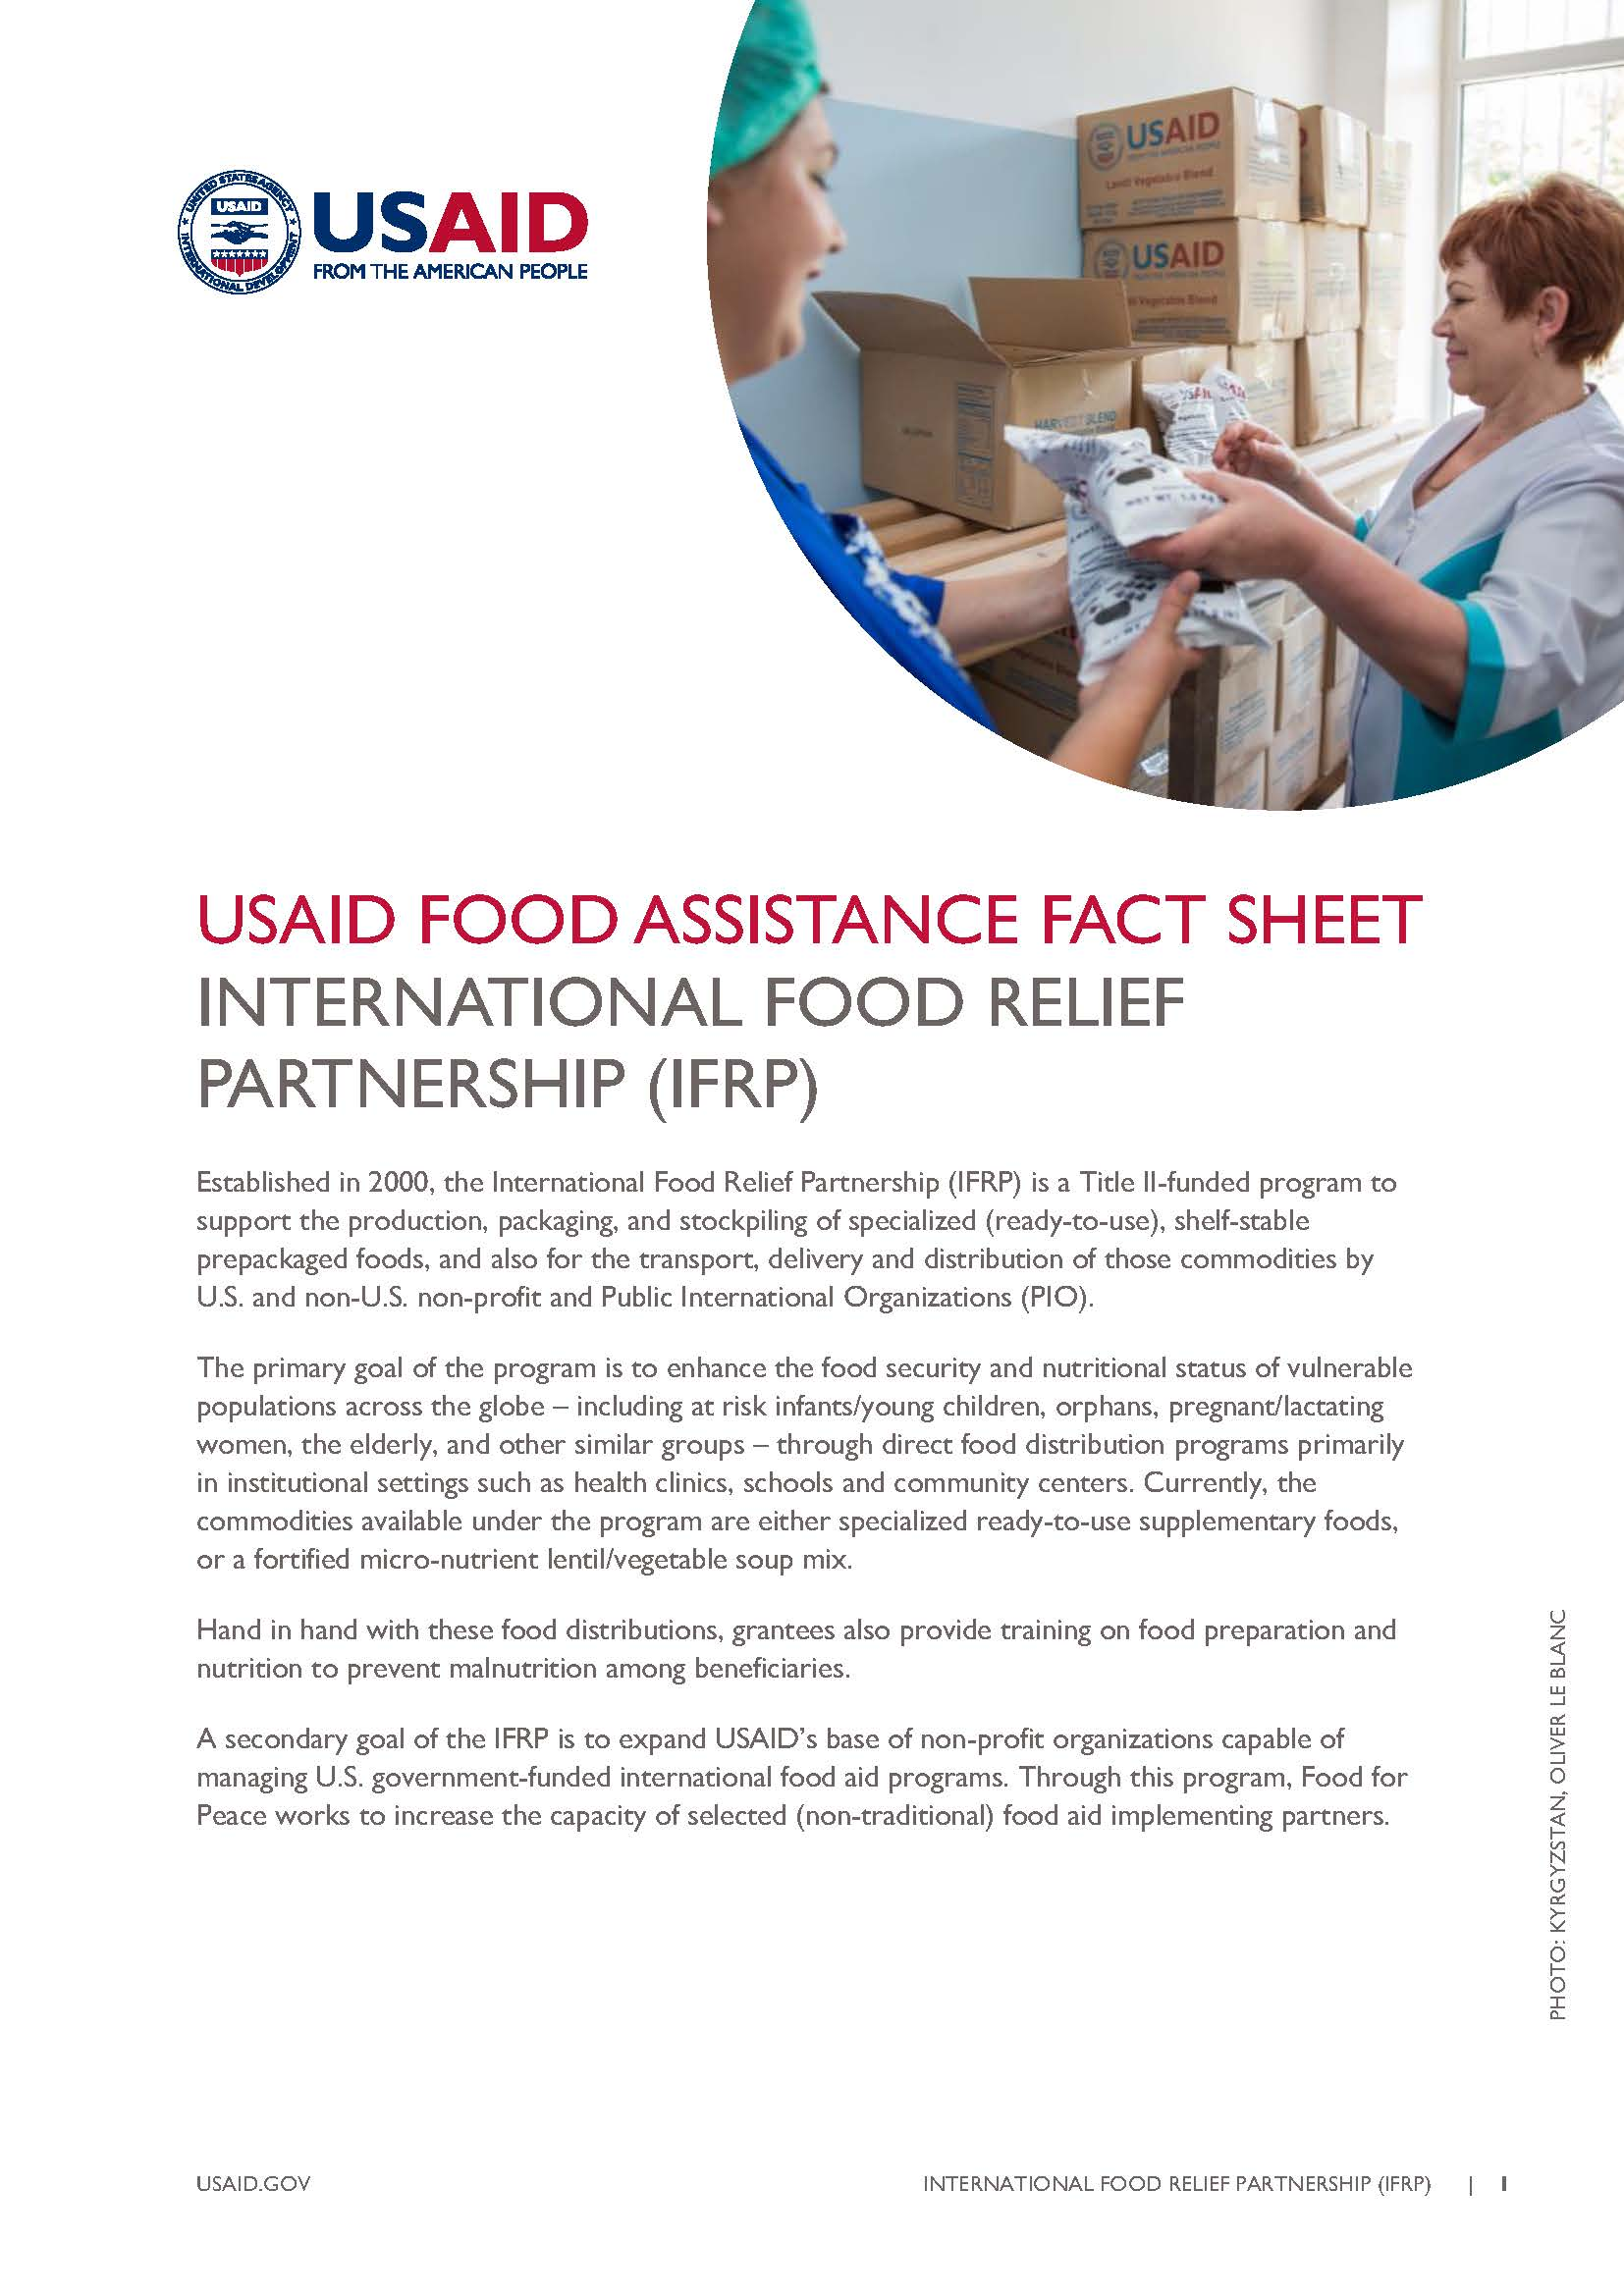 FFP Fact Sheet on International Food Relief Partnership (IFRP)